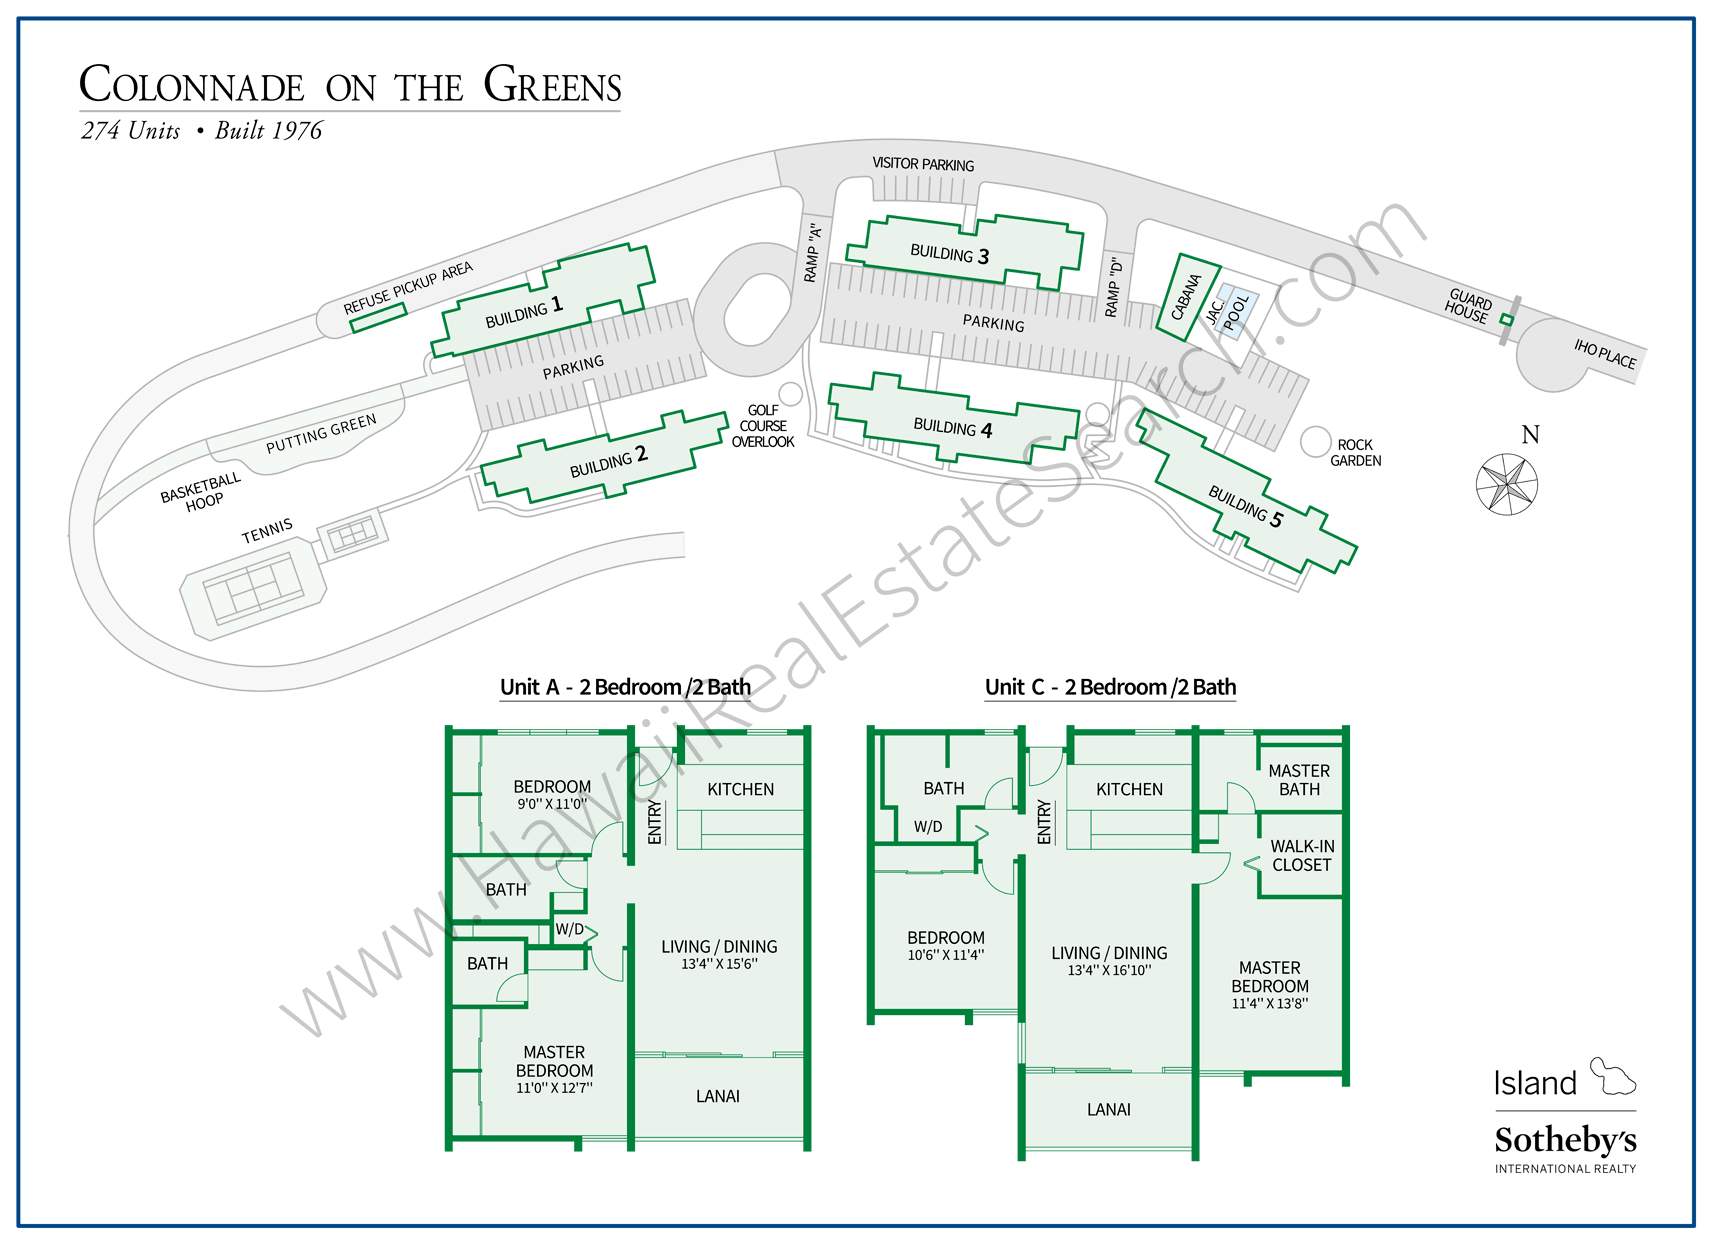 Colonnade On The Greens Condos For Sale Oahu Hawaii Basketball Hoop Diagram Green Map And Floor Plans